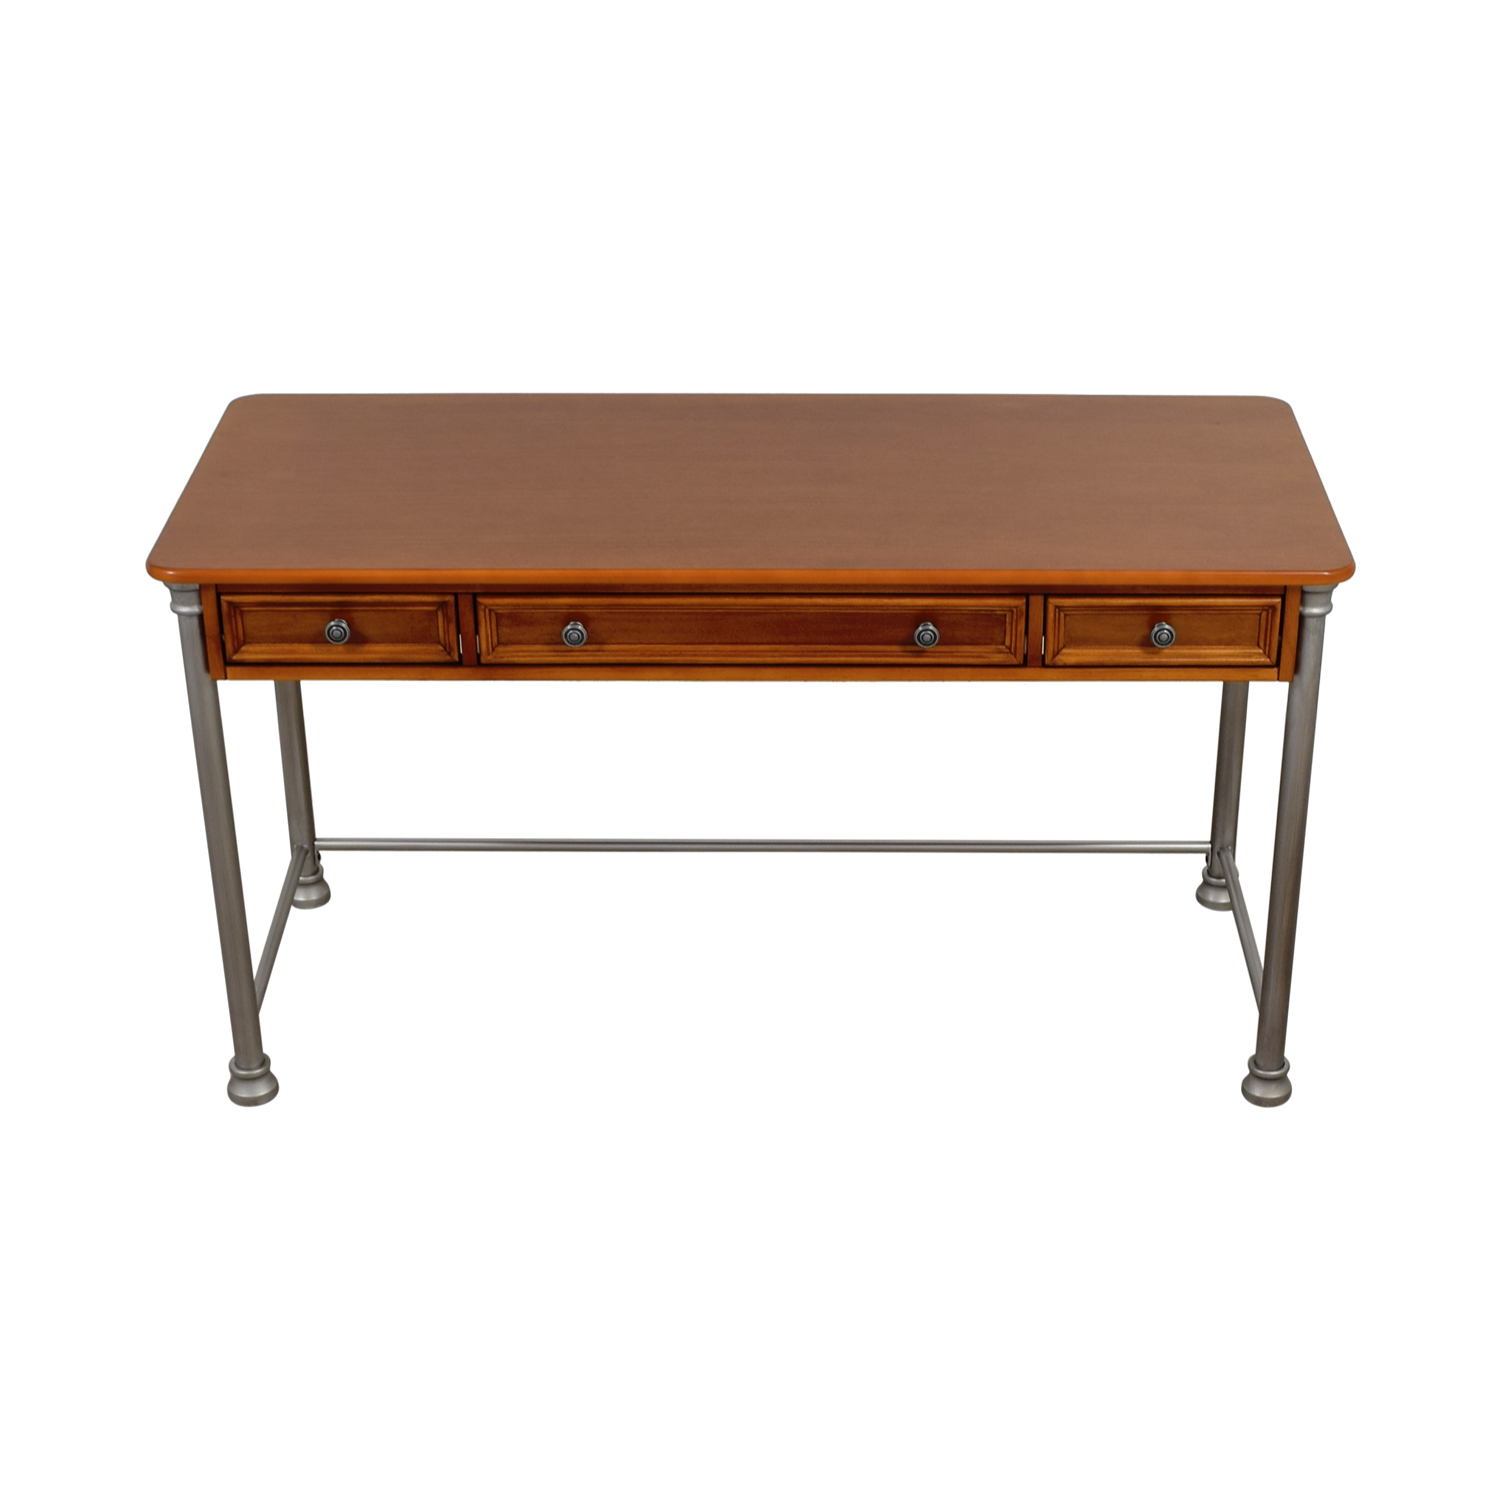 buy Homestyle Homestyle Two Drawer Desk with Keyboard Drawer online